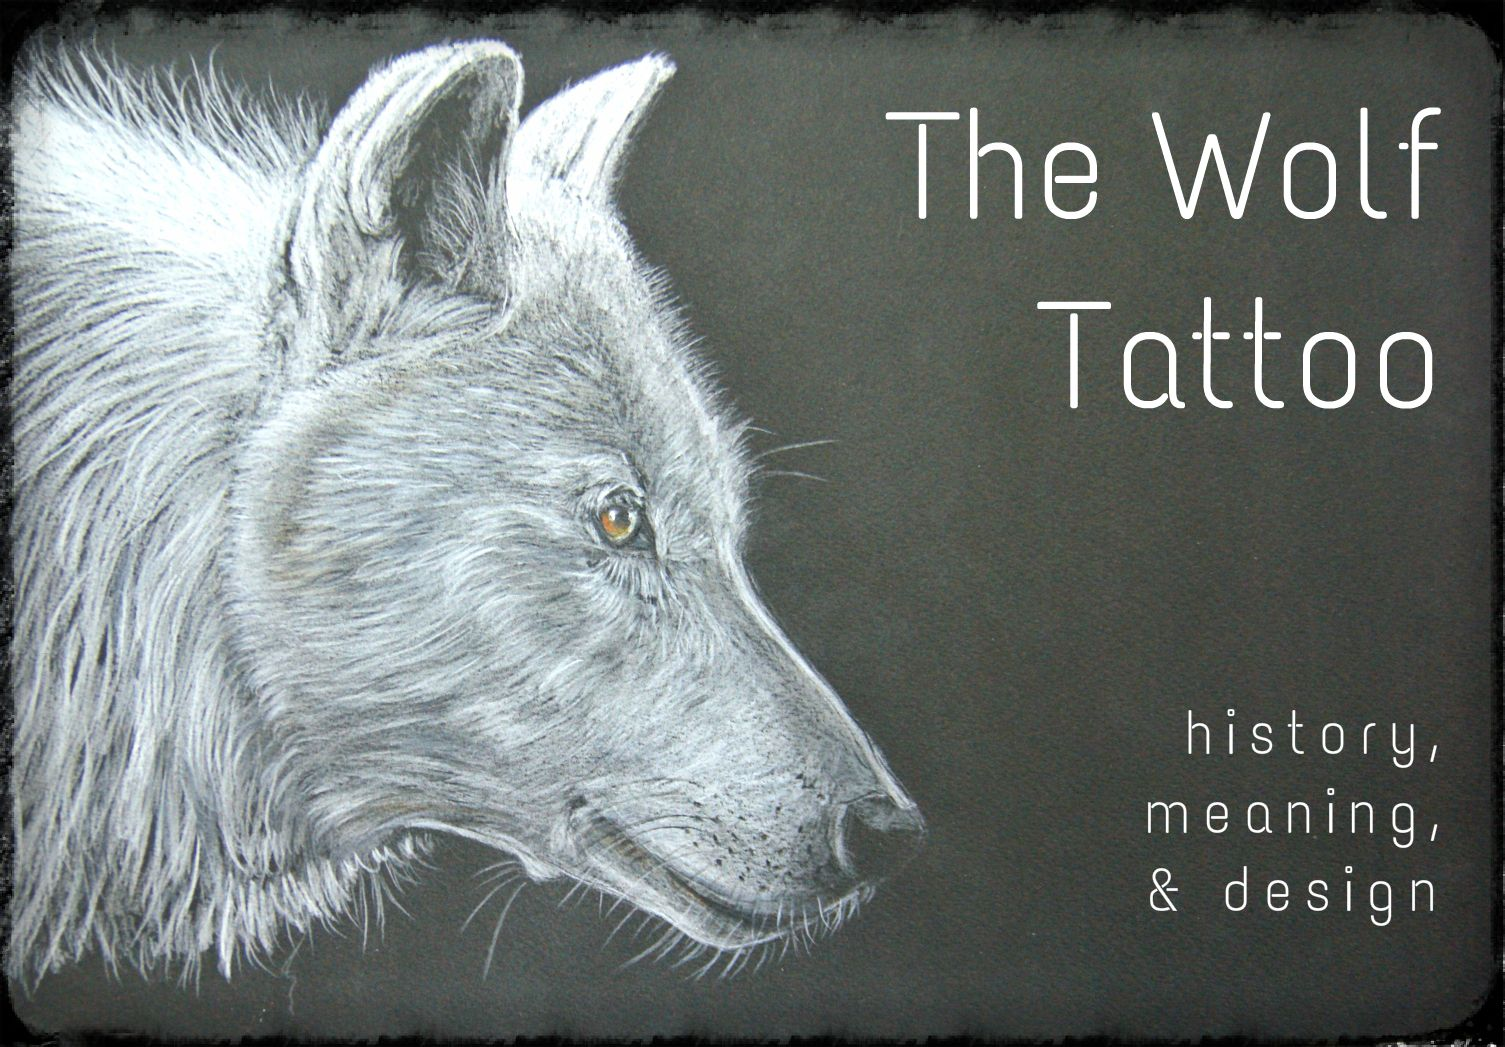 Wolf Tattoos Designs Ideas And Meanings White Wolf Tattoo Wolf Tattoos For Women Wolf Tattoos